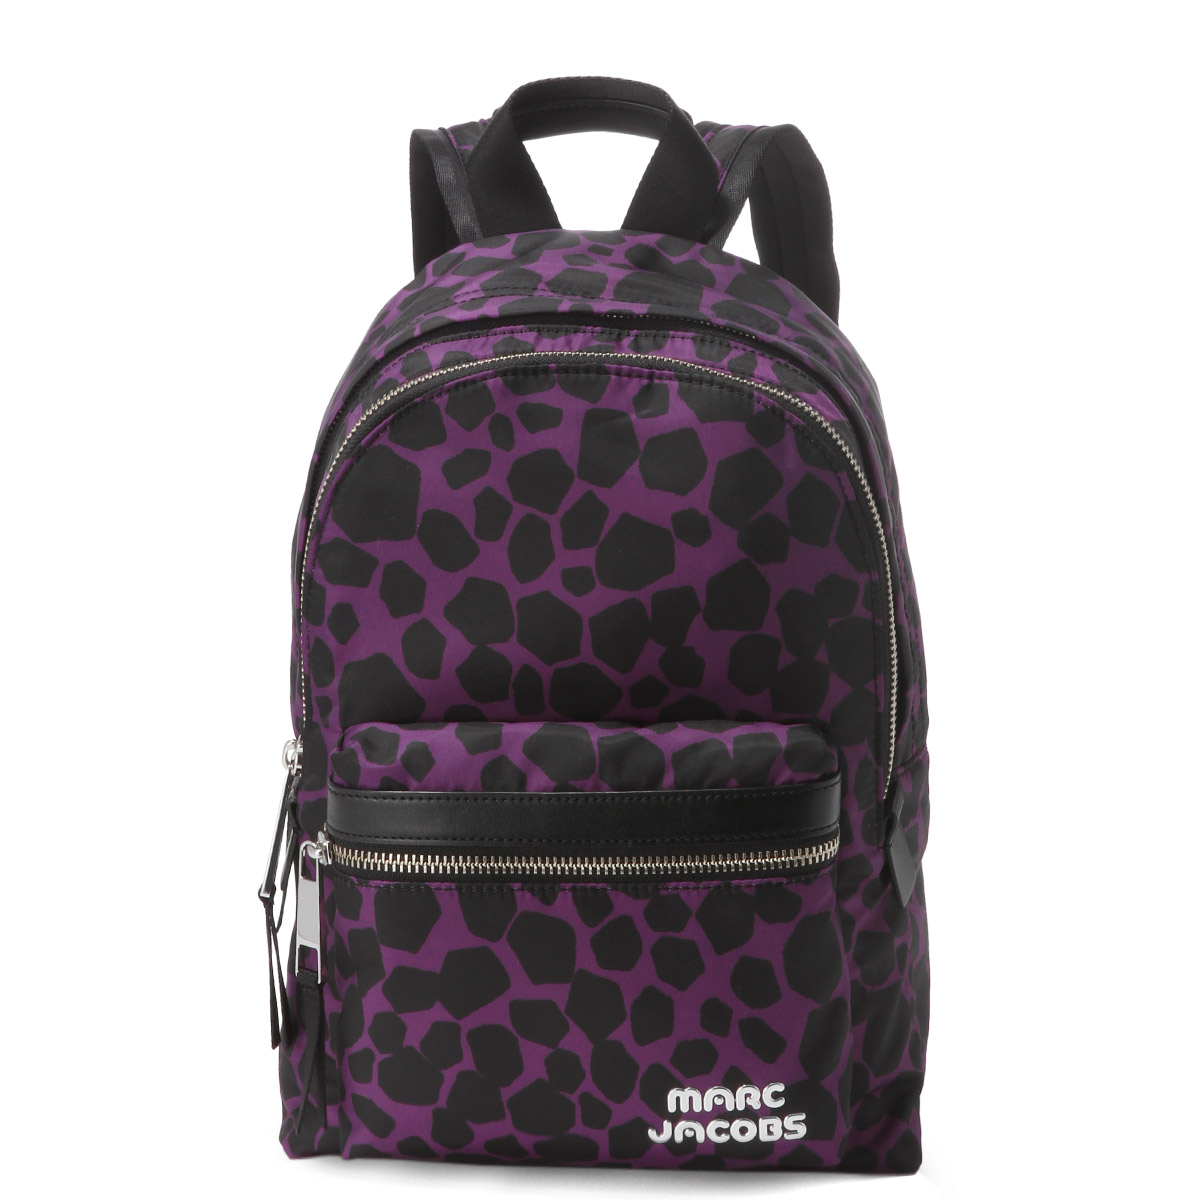 550210e972f1 importshopdouble  Mark Jacobs MARC JACOBS bag lady M0014277 677 backpack  medium TREK PACK trek pack BERRY MULTI purple